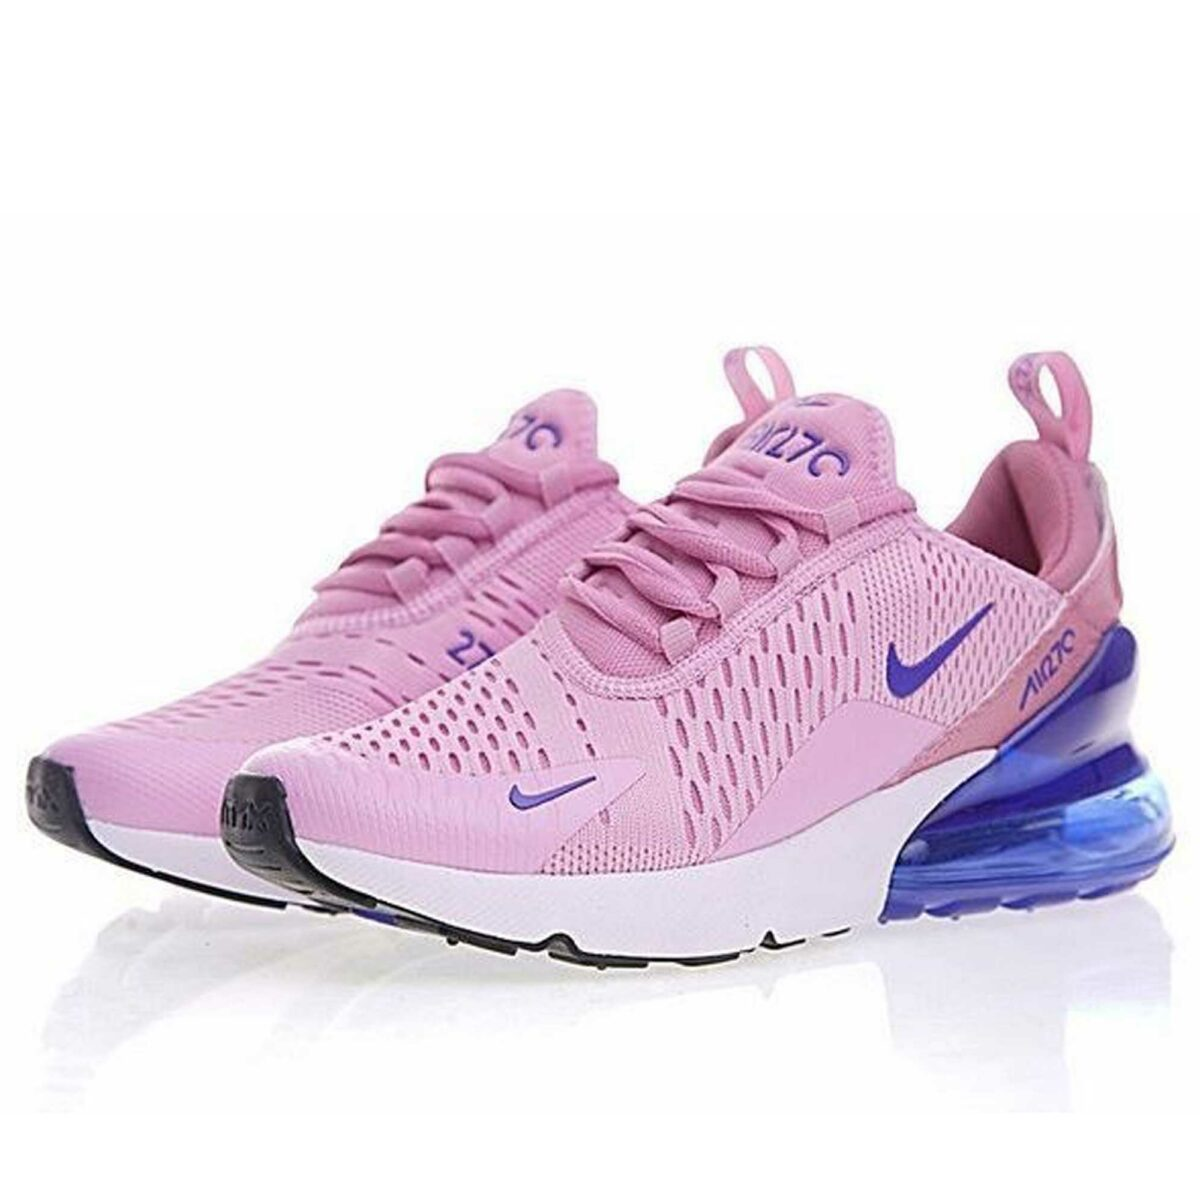 nike air max 270 pink blue white купить